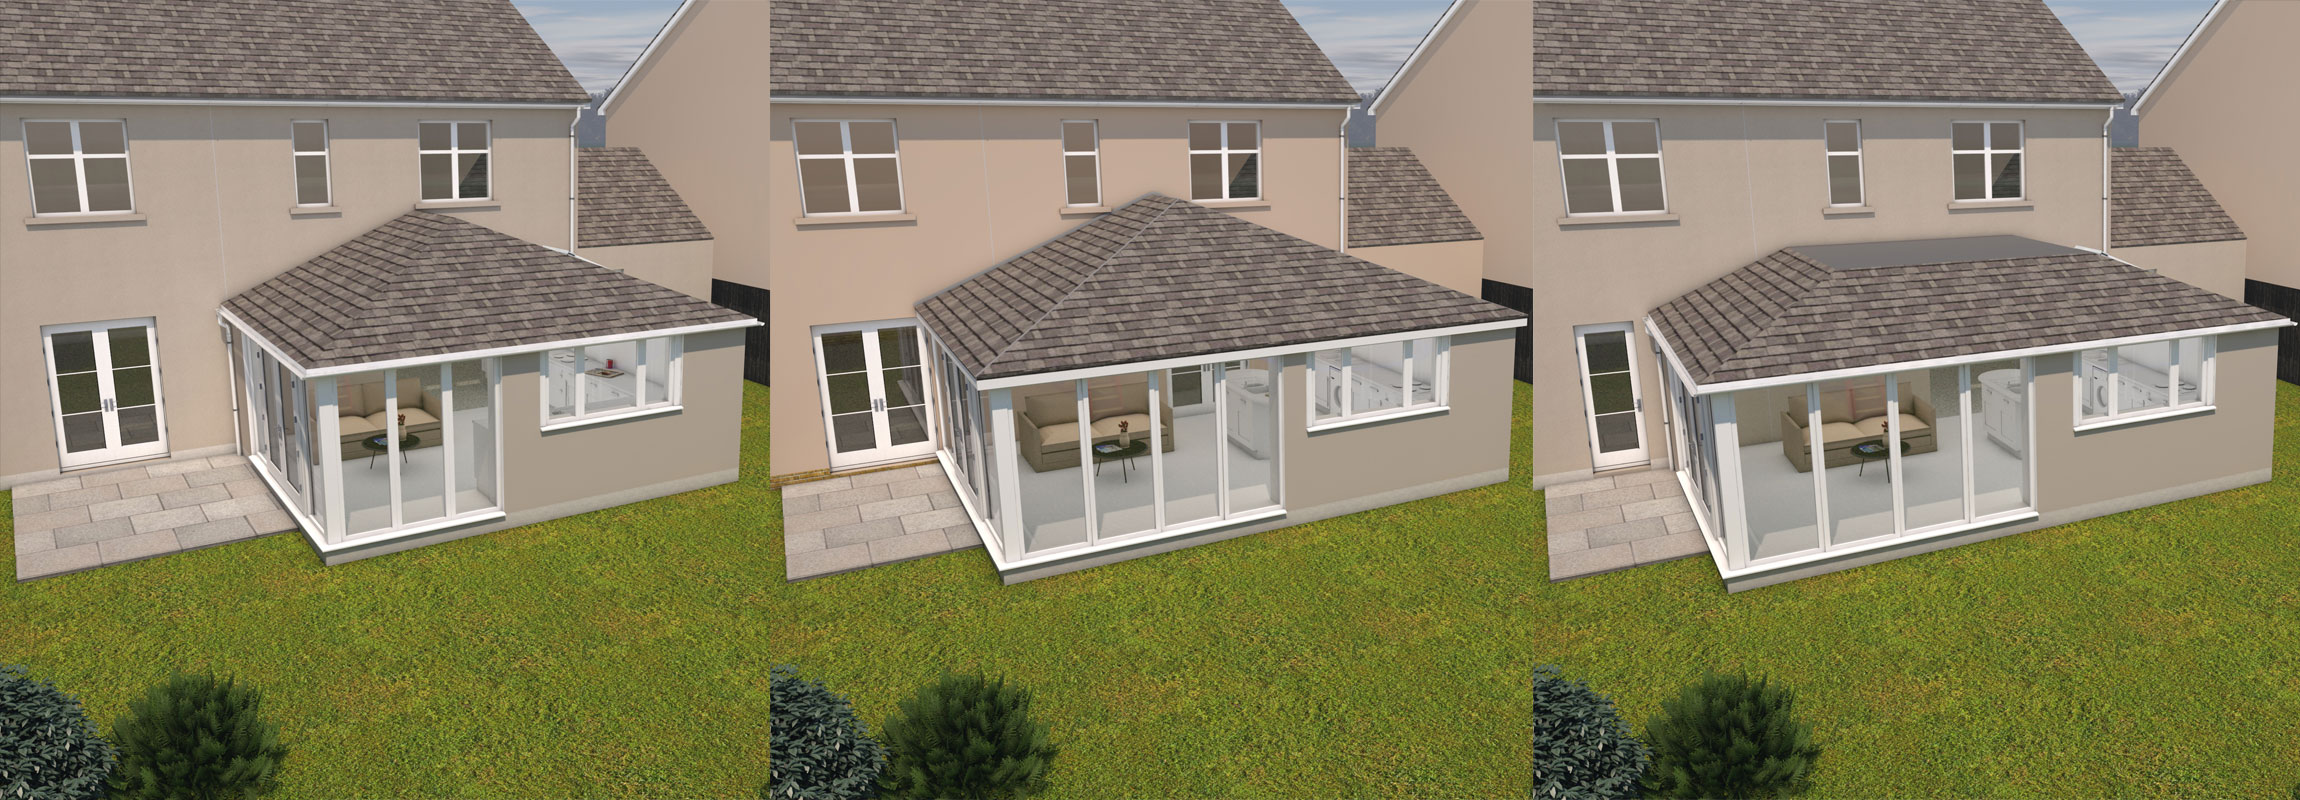 Thistle Home Extension Design Aberdeen